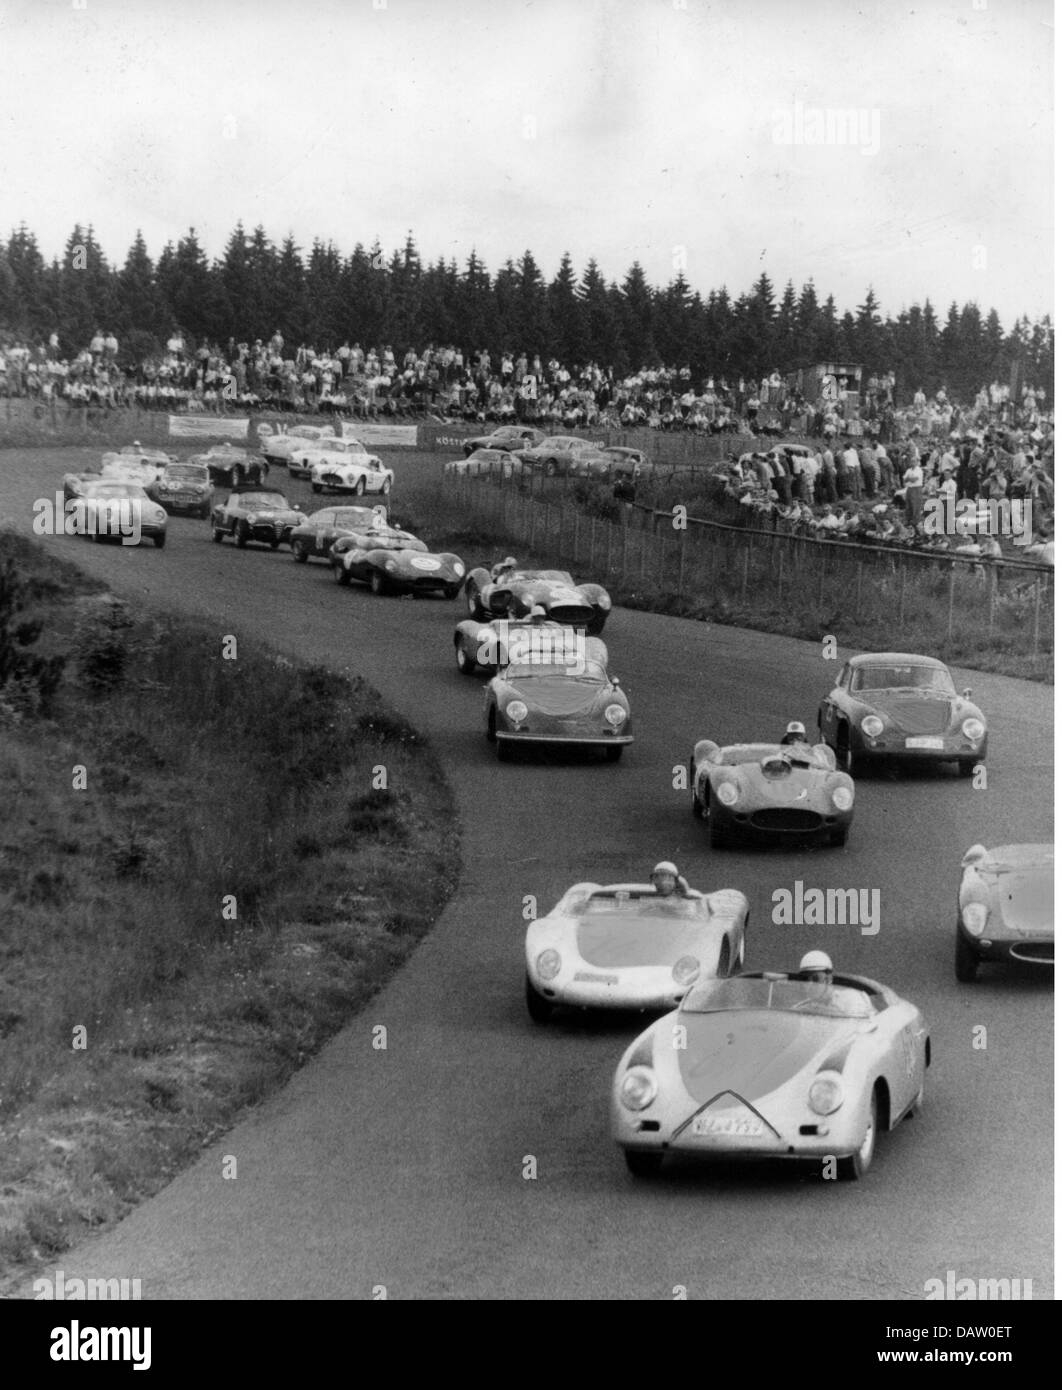 Exceptionnel Sport, Car Racing, Race, 1950s, 50s, Cars, 20th Century, Historic,  Historical